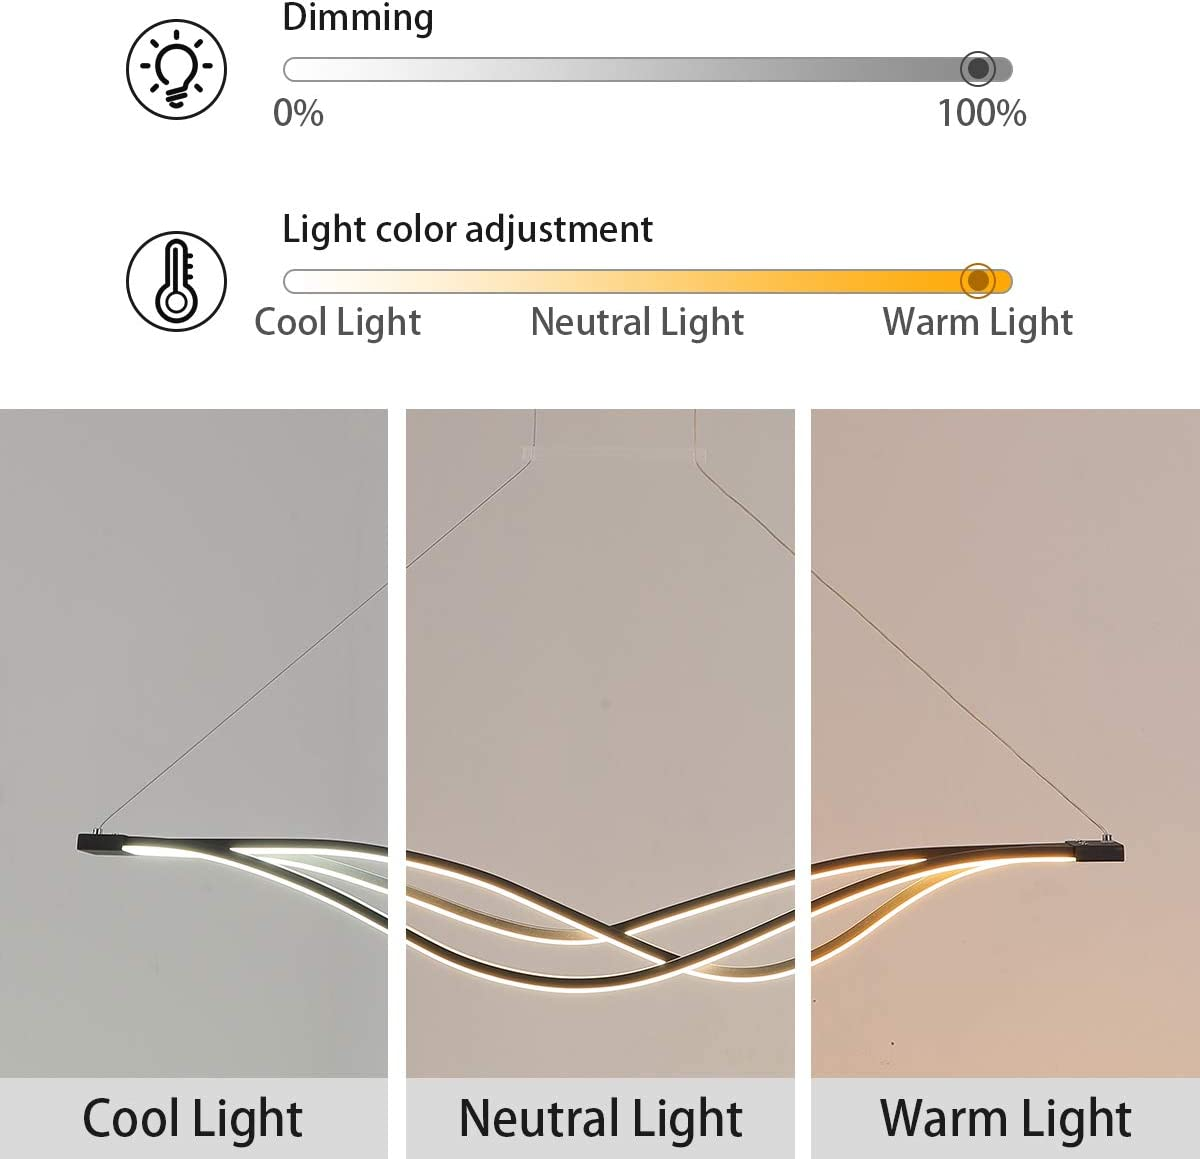 Garwarm Modern Pendant Light,48W LED Dimmable Chandelier with Remote,Black Minimalist Chandeliers Lighting Contemporary Linear Hanging Light Fixture for Living Dining Room Kitchen Island